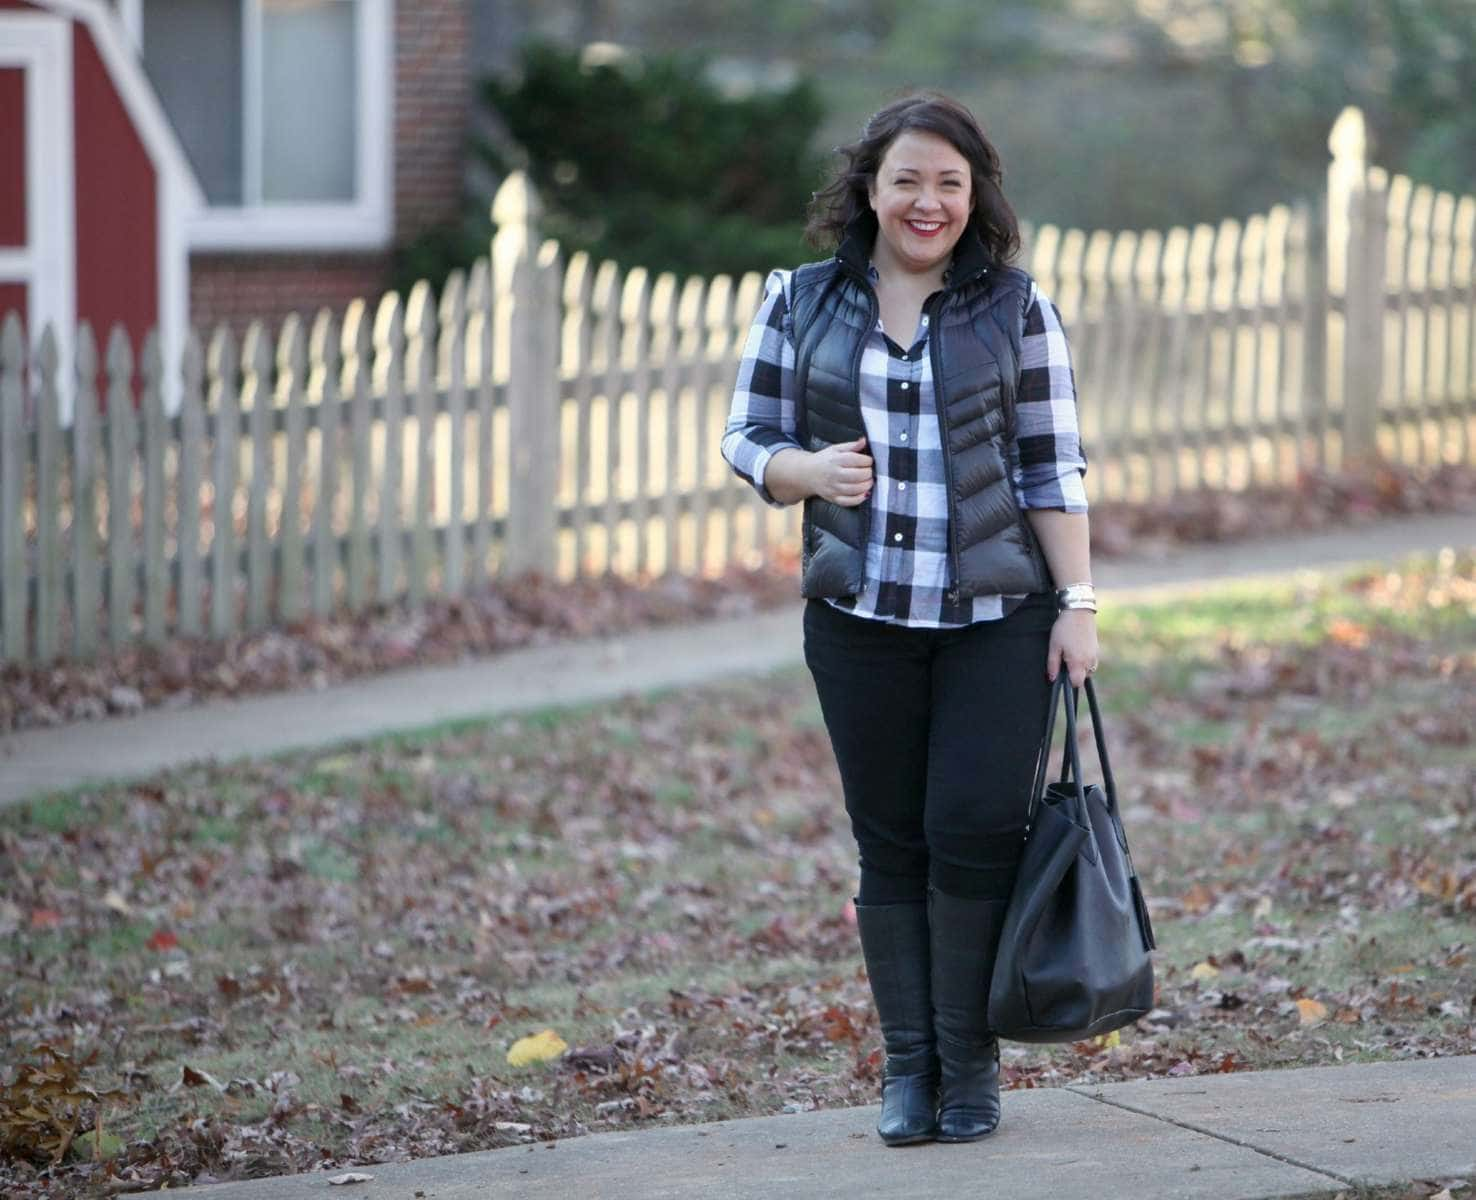 Wardrobe Oxygen featuring a Foxcroft plaid shirt, Bernardo vest, and Adora Bags leather tote